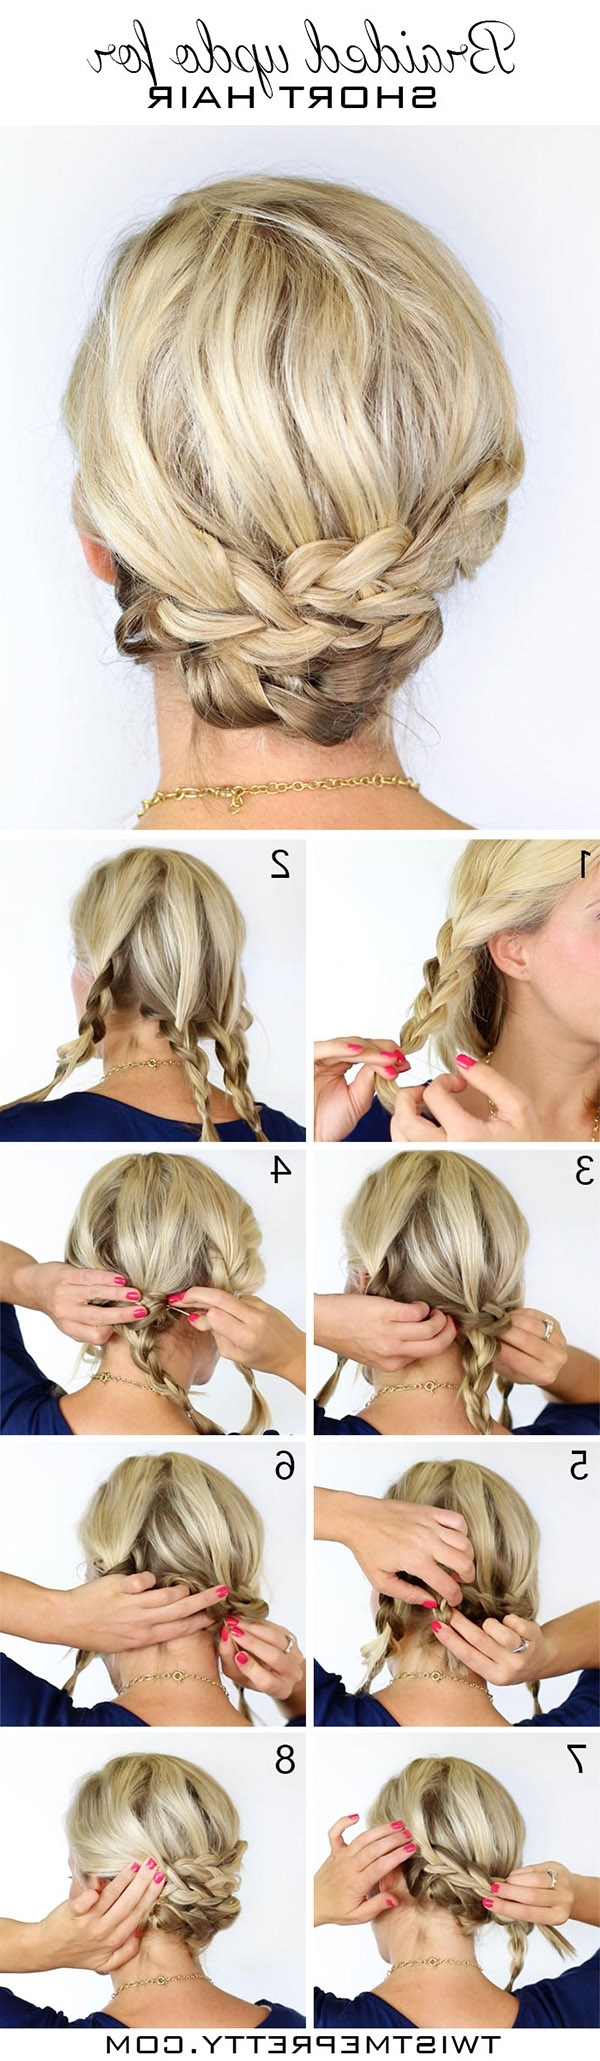 Widely Used Diy Wedding Hairstyles In 20 Diy Wedding Hairstyles With Tutorials To Try On Your Own (View 15 of 15)